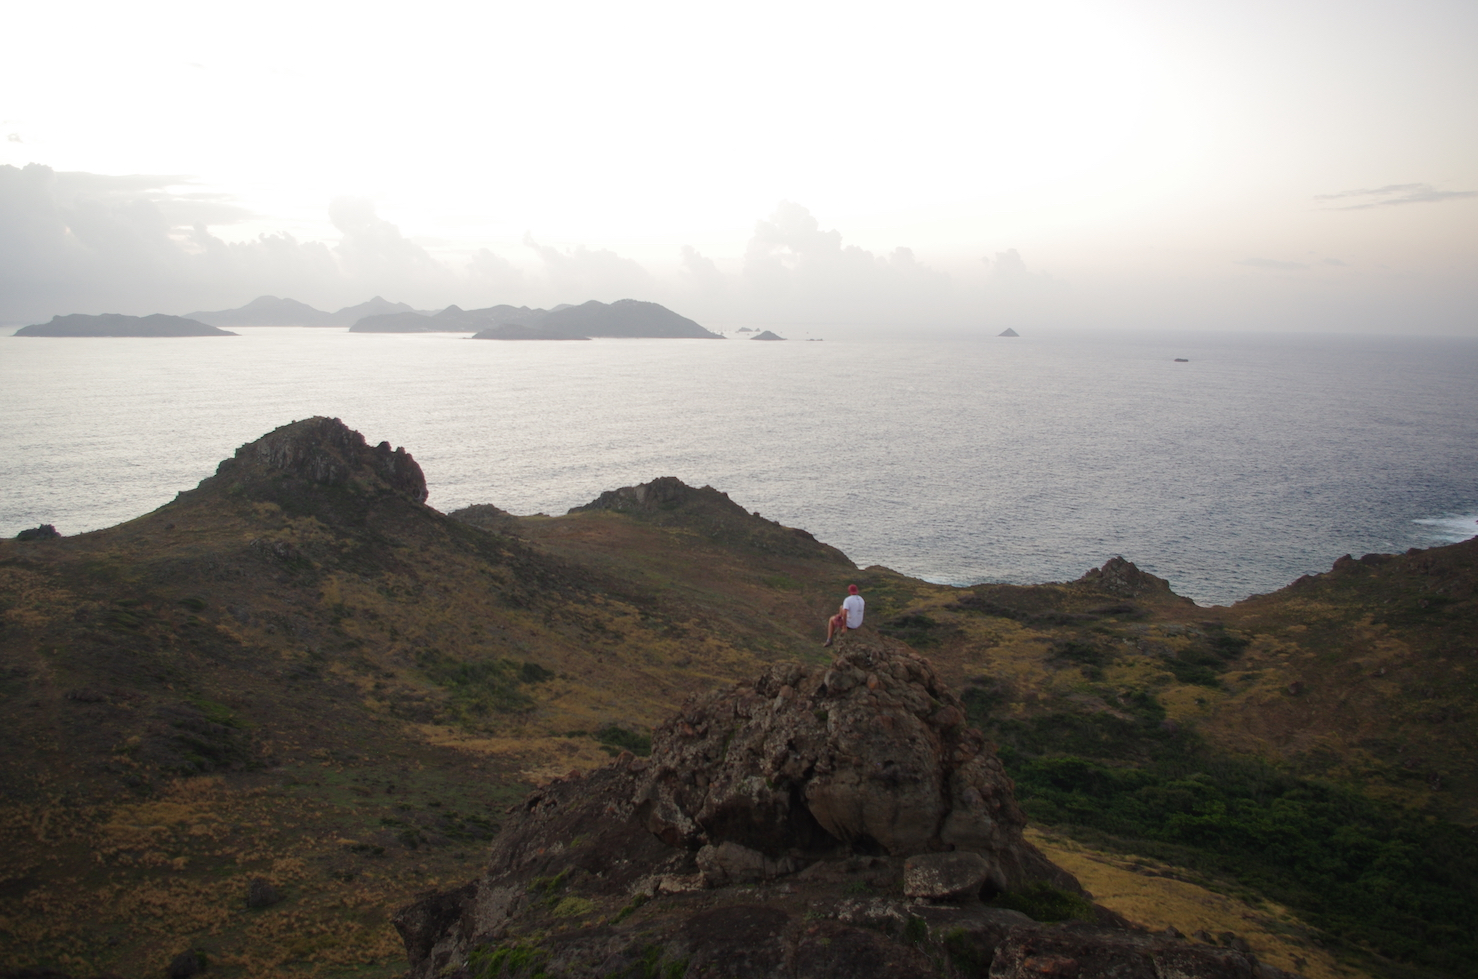 Ryan atop an adjacent peak, St. Barth's in the background.